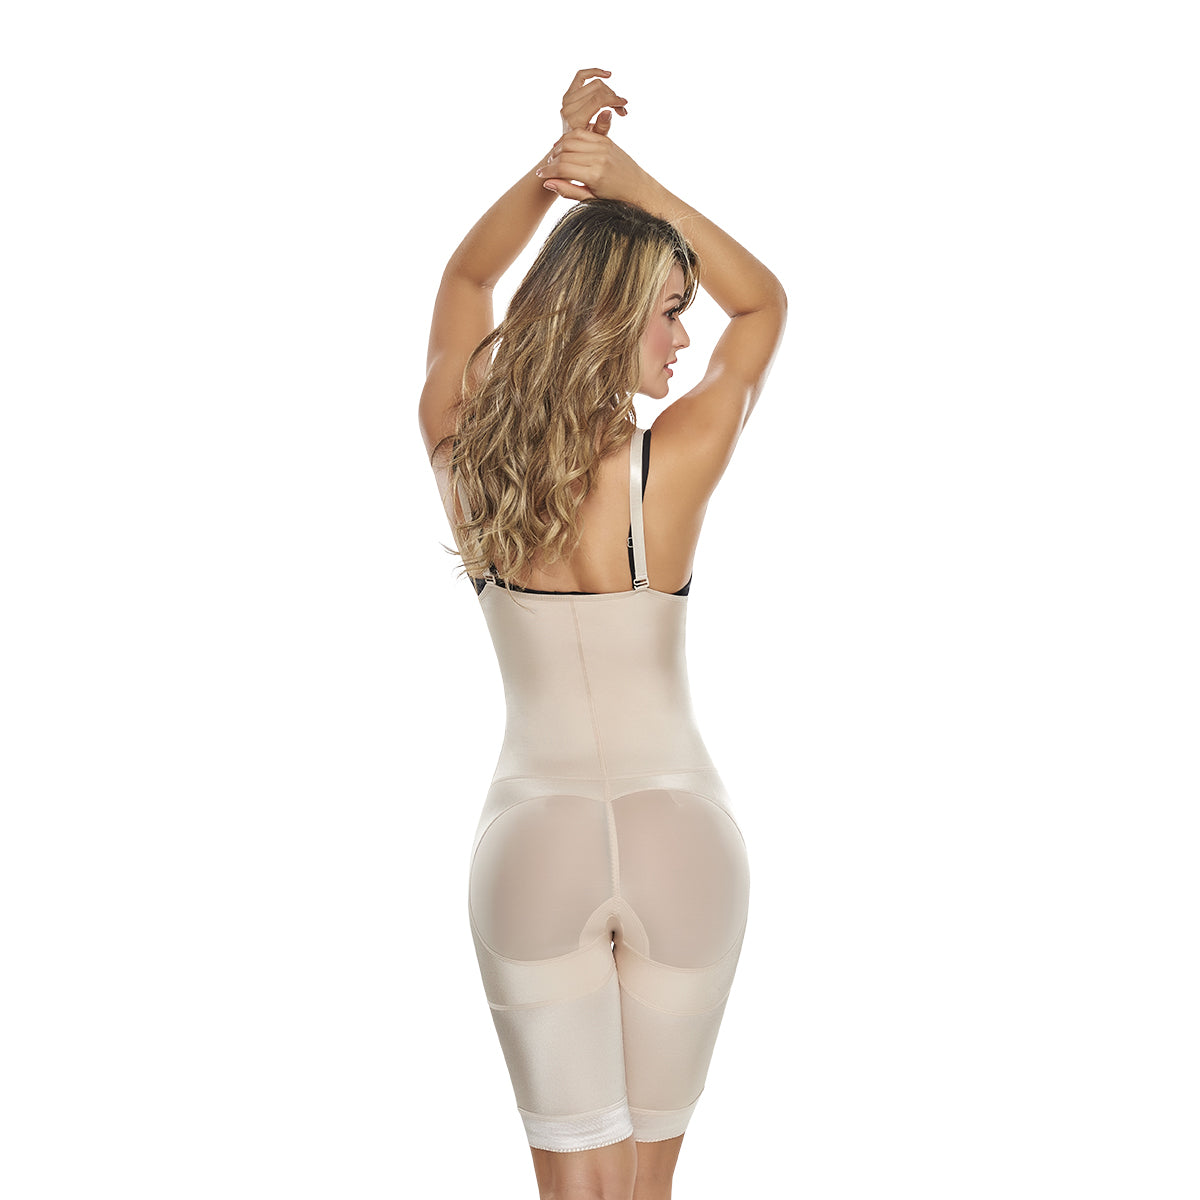 hourglass figure power slimmed mid thigh body shaper in nude color 1